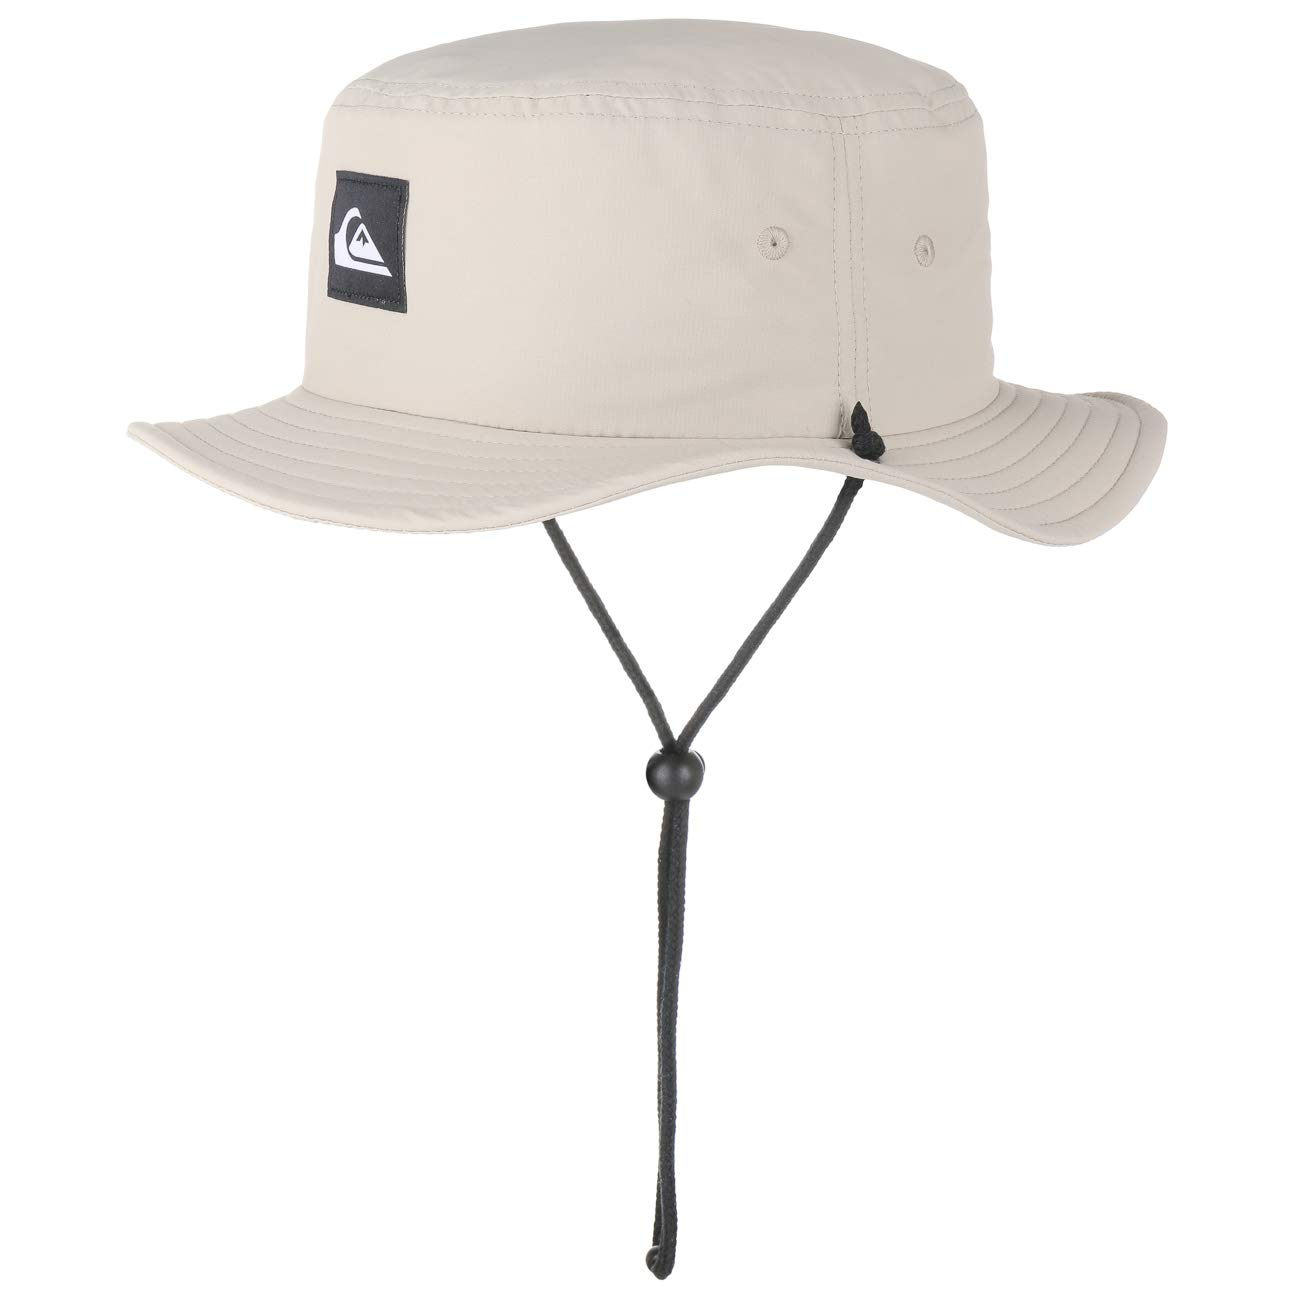 Quiksilver Bushmaster Light - Bucket Hat for Men - Bucket Hat - Men -  Beige  Amazon.co.uk  Shoes   Bags 778fa31d129